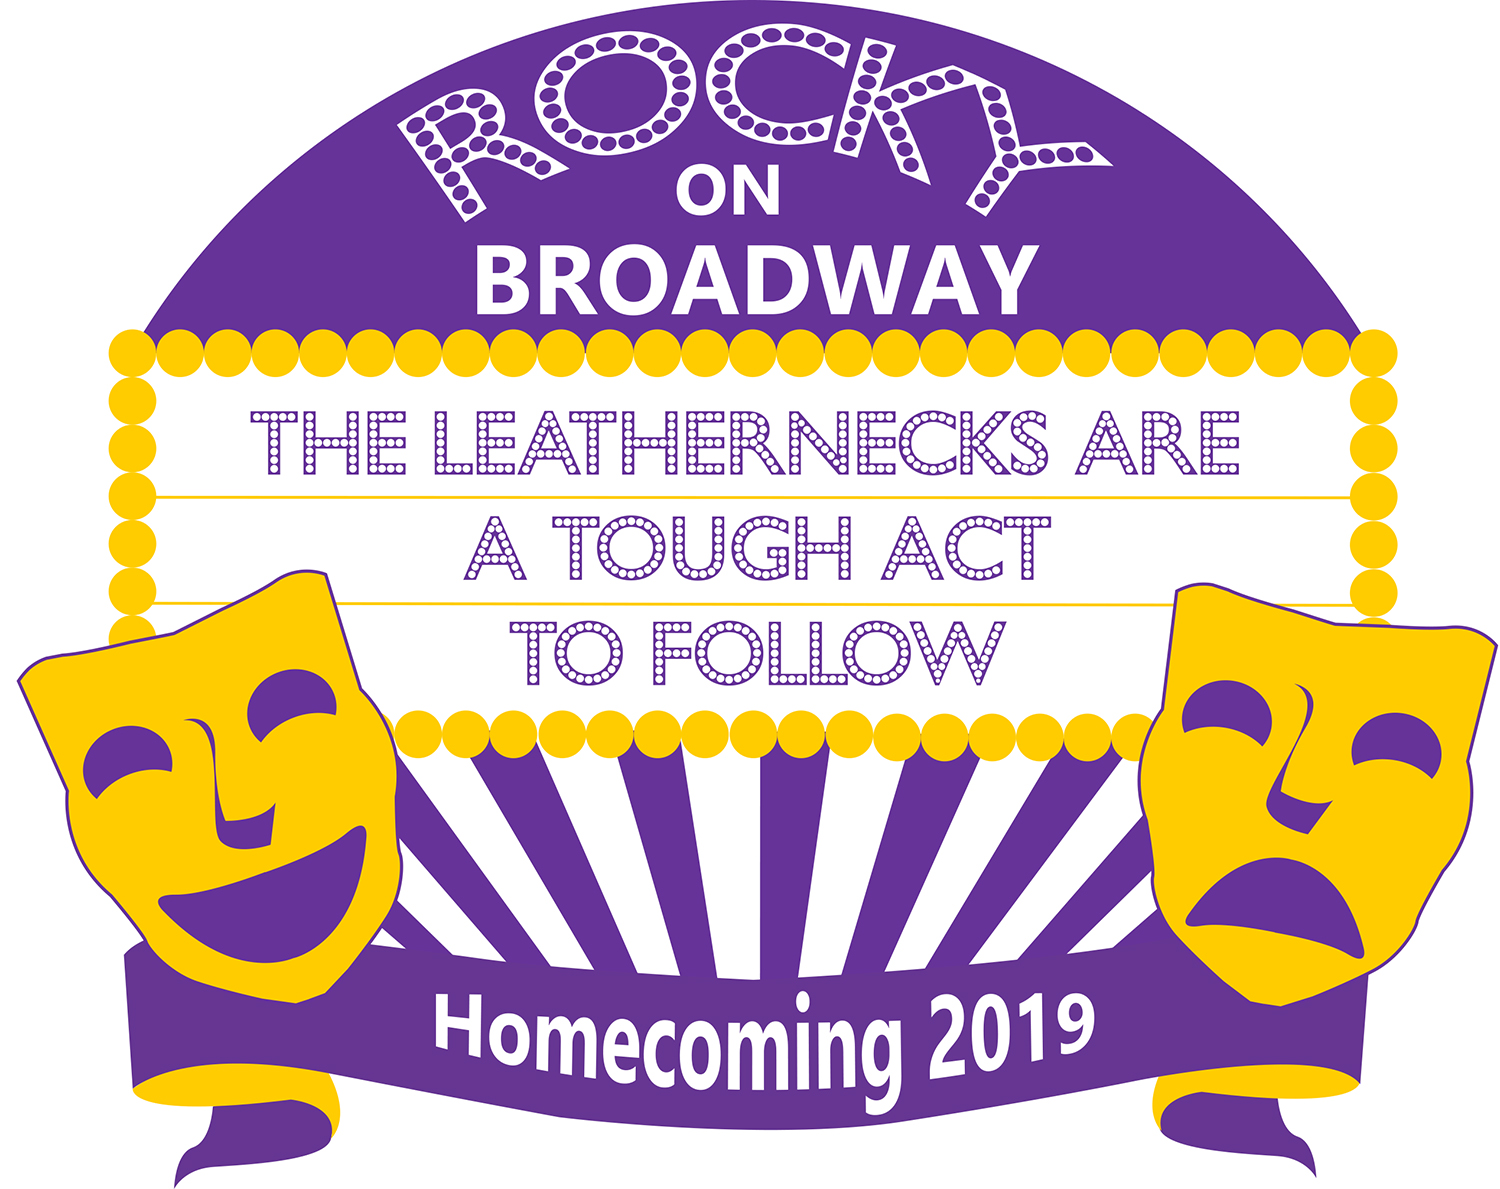 Shermanhall cliparts clip art freeuse library Save the Dates: WIU Homecoming 2019 Sep. 27-Oct. 5 - Western ... clip art freeuse library